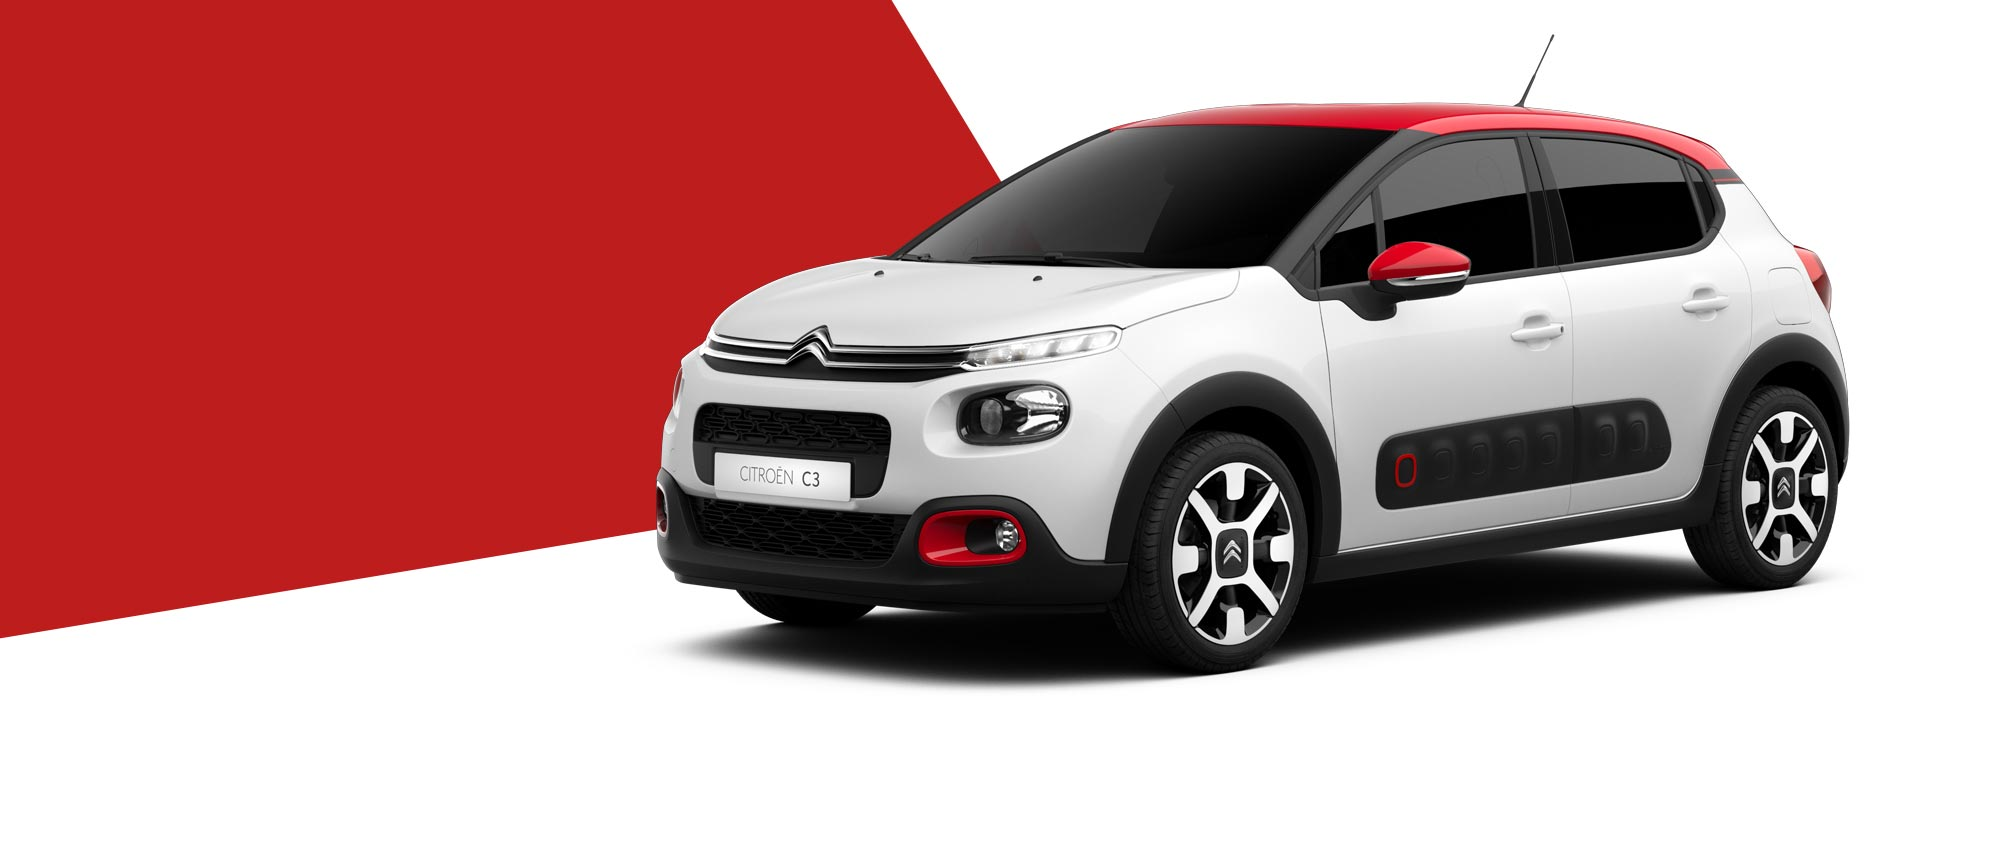 Citroen C3 Inspired By You